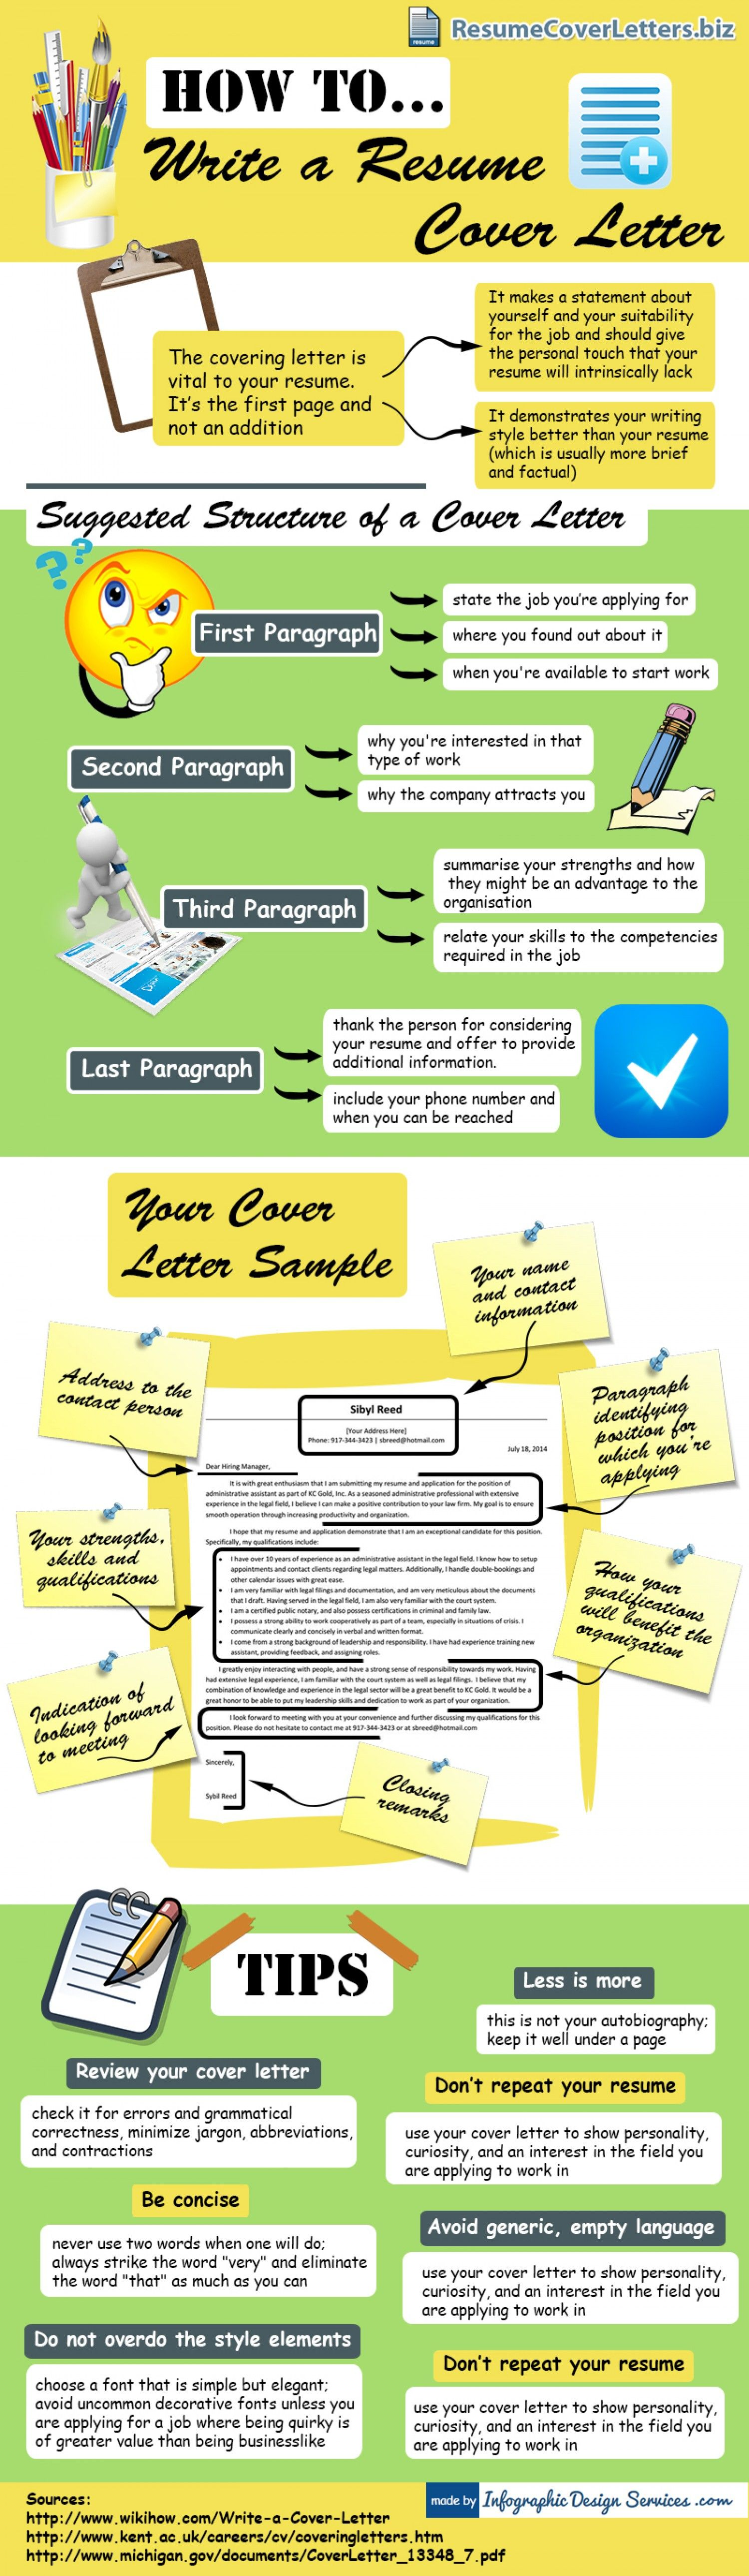 Resume Cover Letter Writing Tips Infographic  Useful Classroom